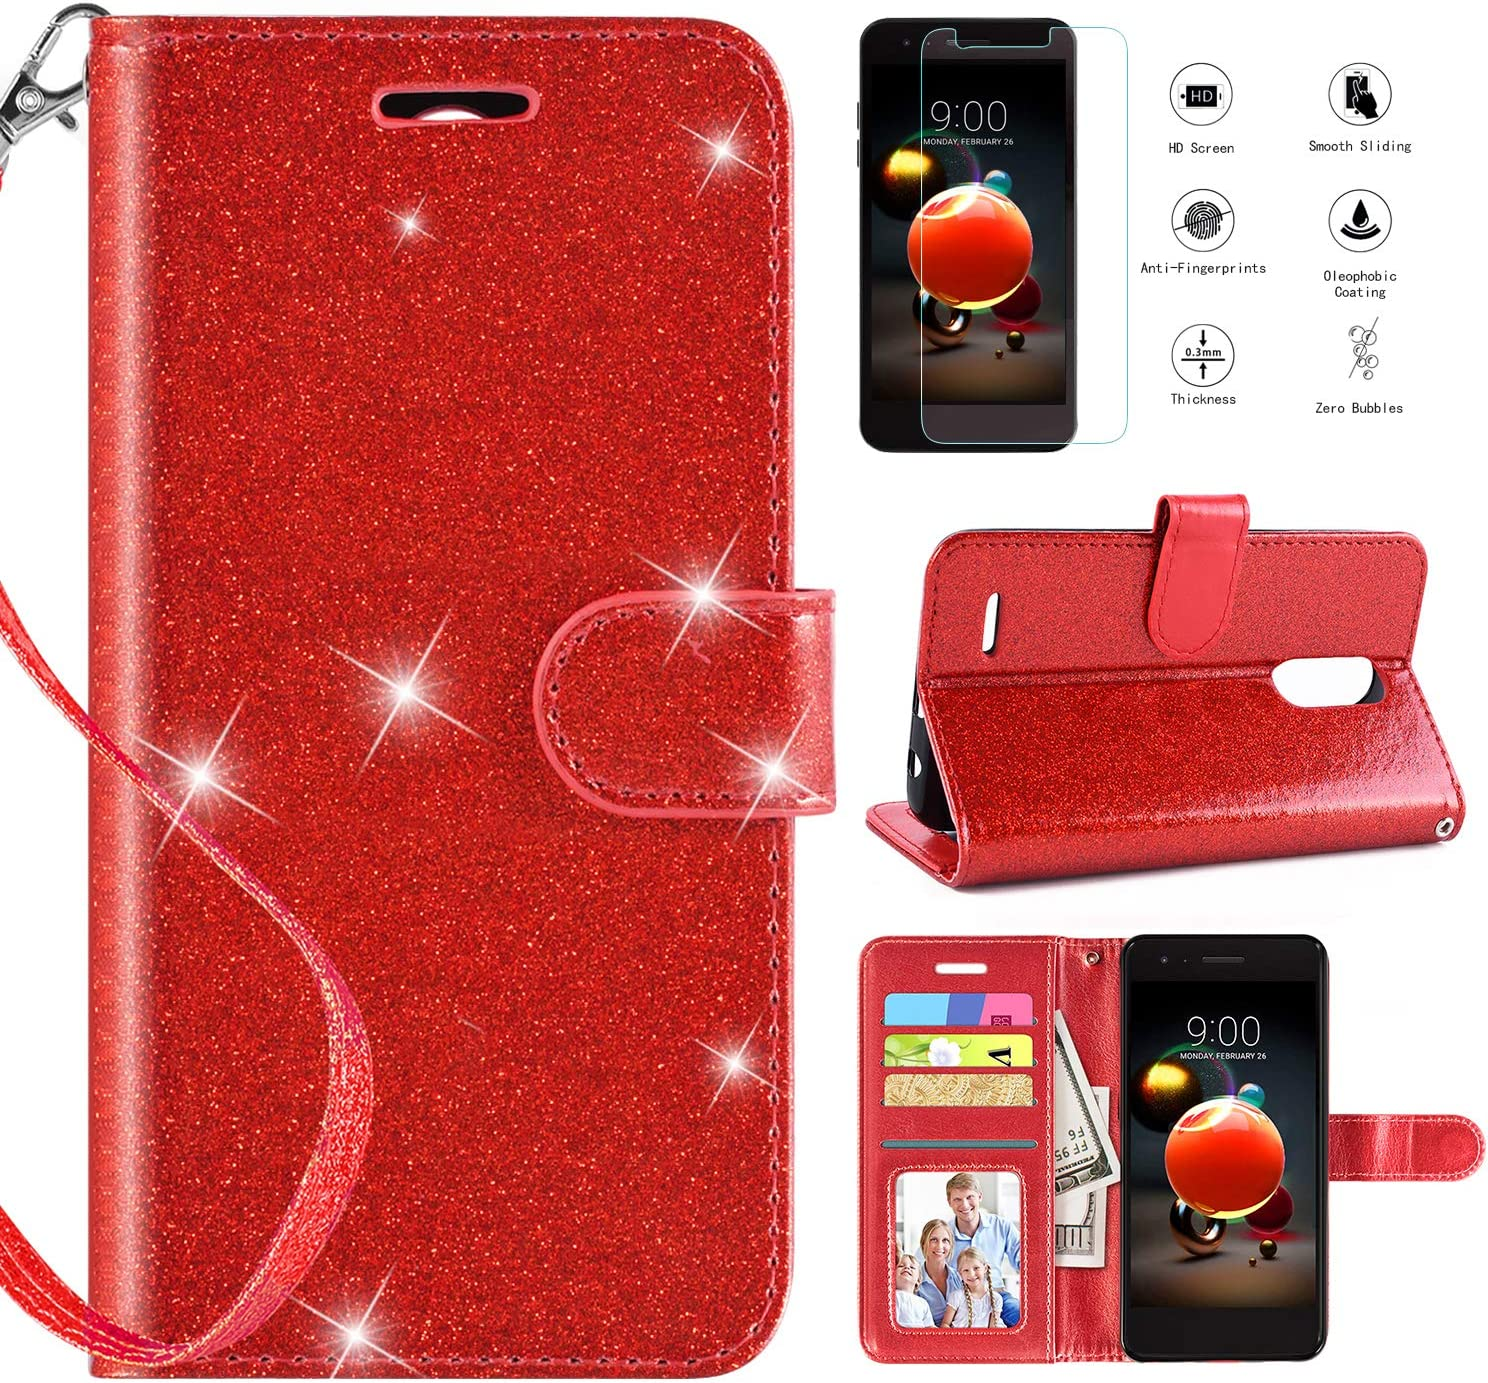 LG Aristo 2 Case Wallet w Screen Protector,LG Tribute Dynasty/LG Zone 4/LG Aristo 2/LG Fortune 2/LG Risio 3/LG K8+ Plus/LG K8 2018/LG Phoenix 4/LG Rebel 4 Wallet Case,Kickstand Wrist Strap,Red